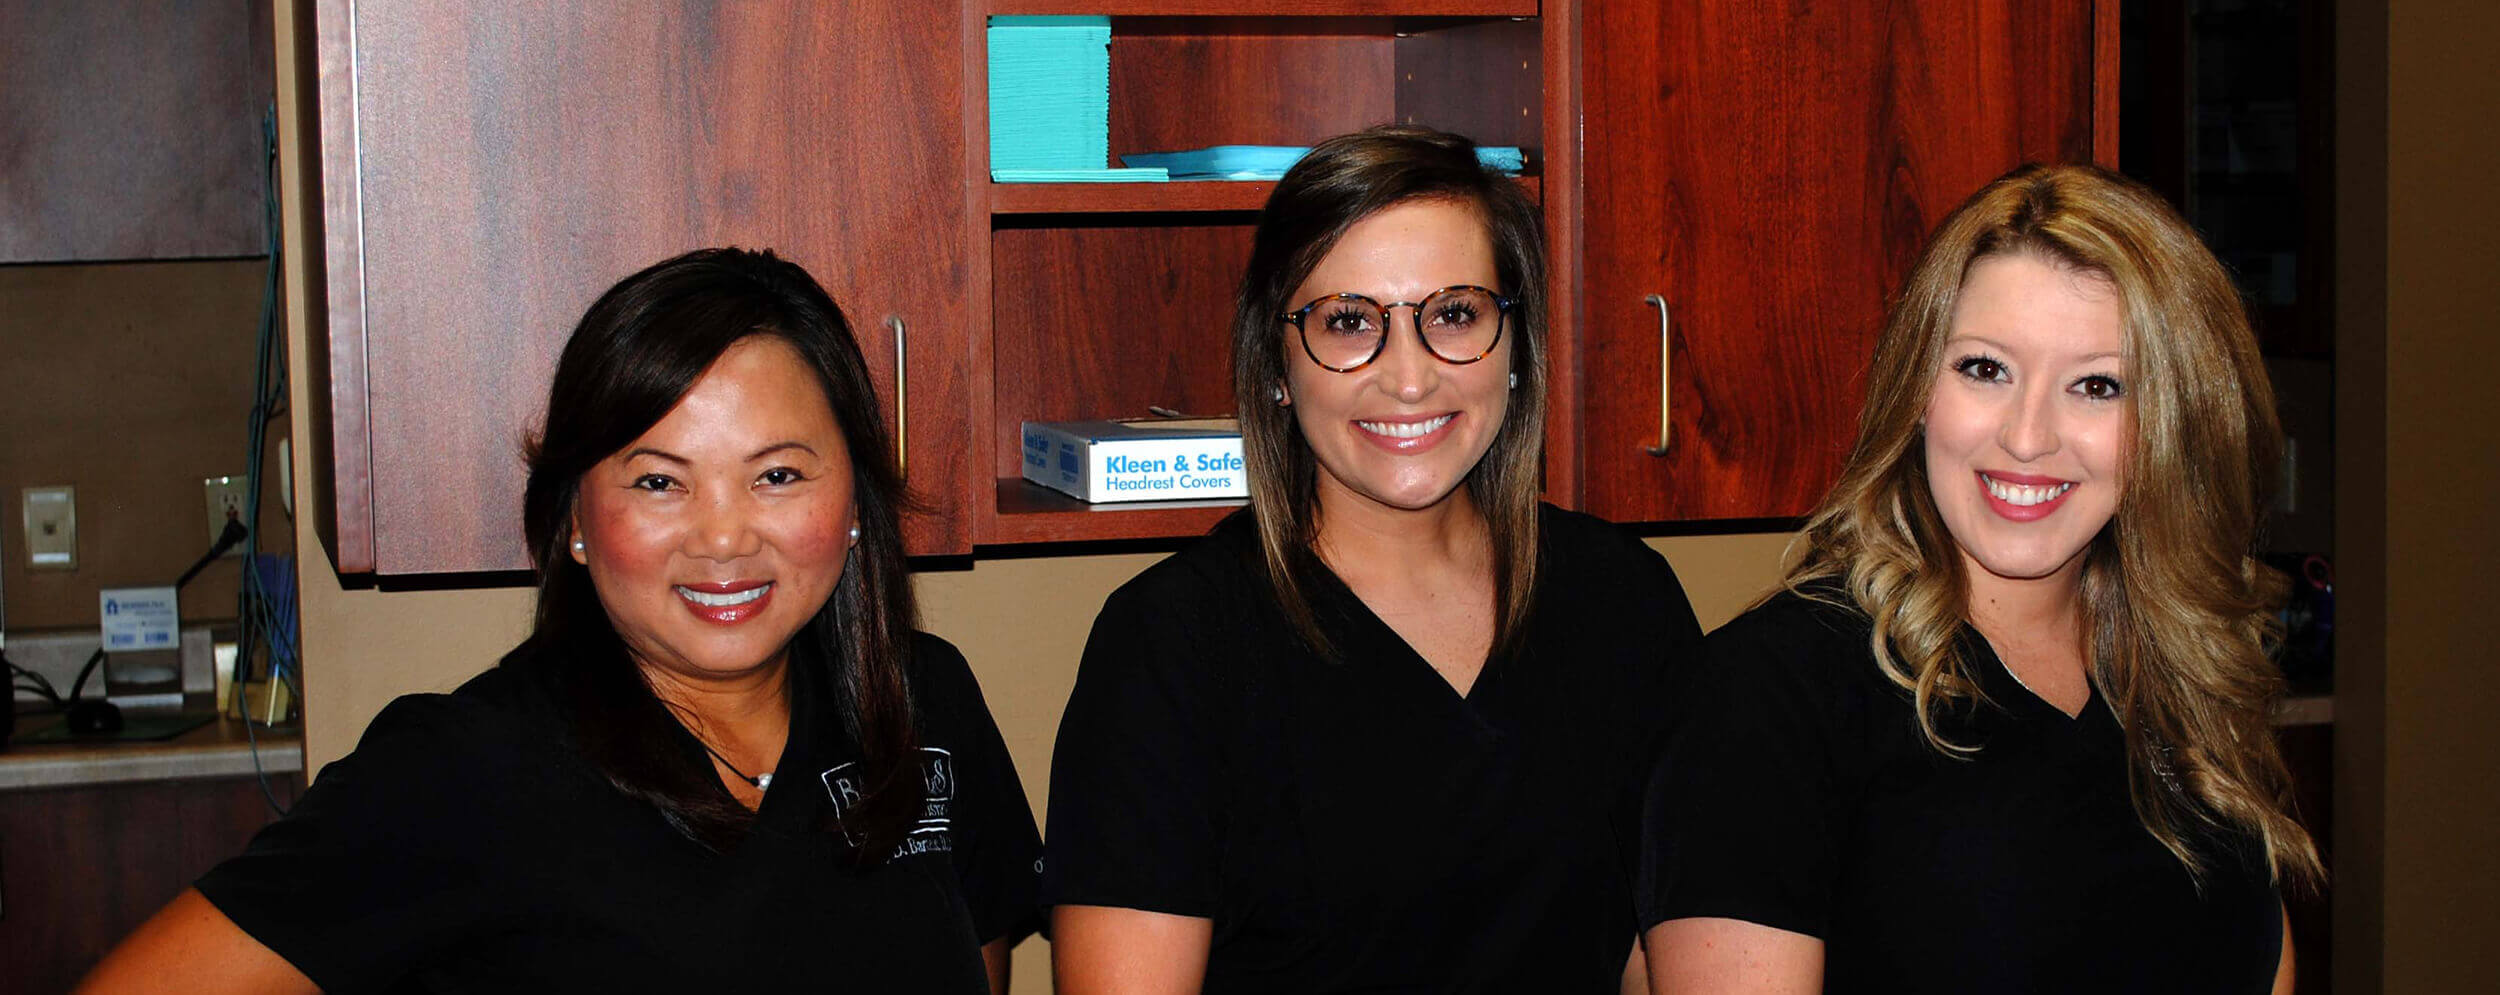 Staff at Bartels Family Dentistry smiling